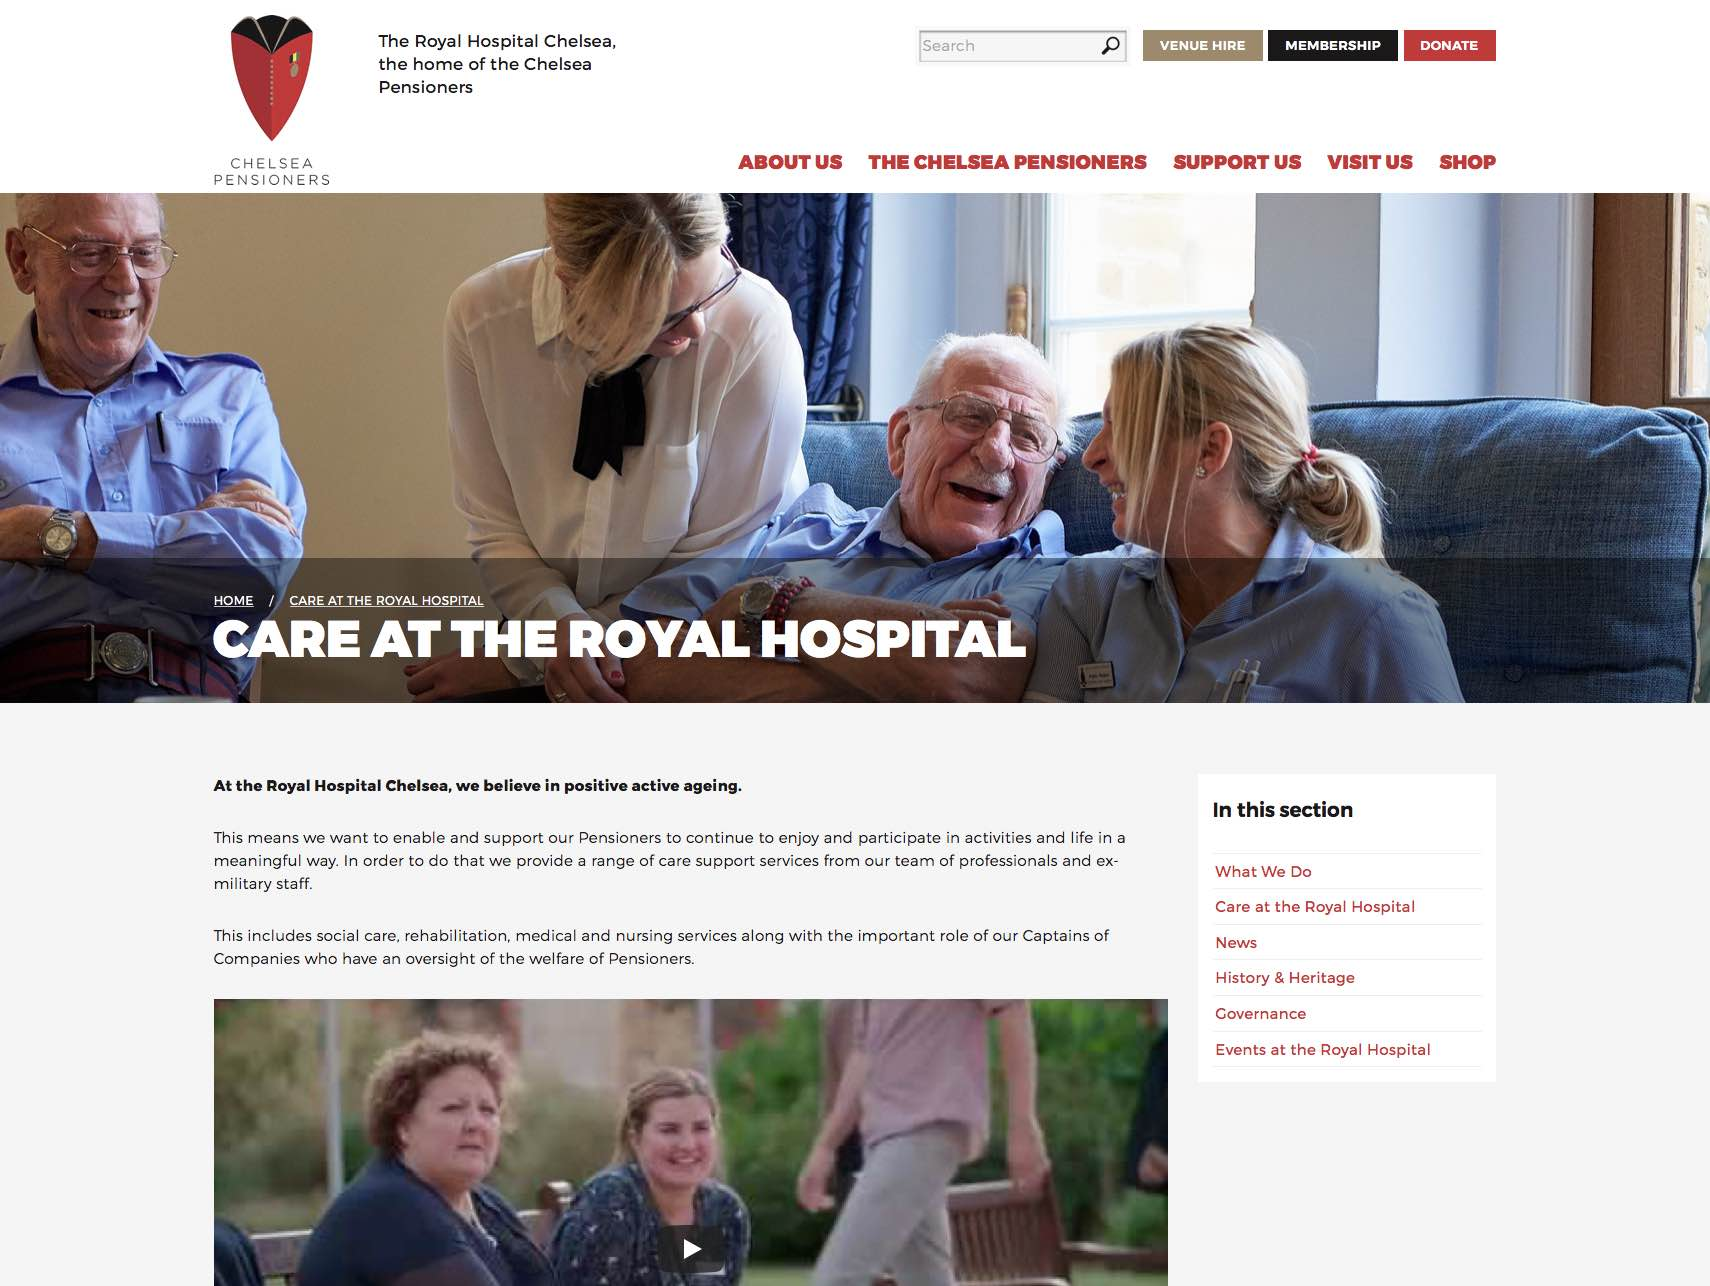 Screenshot of the Care at RHC page.